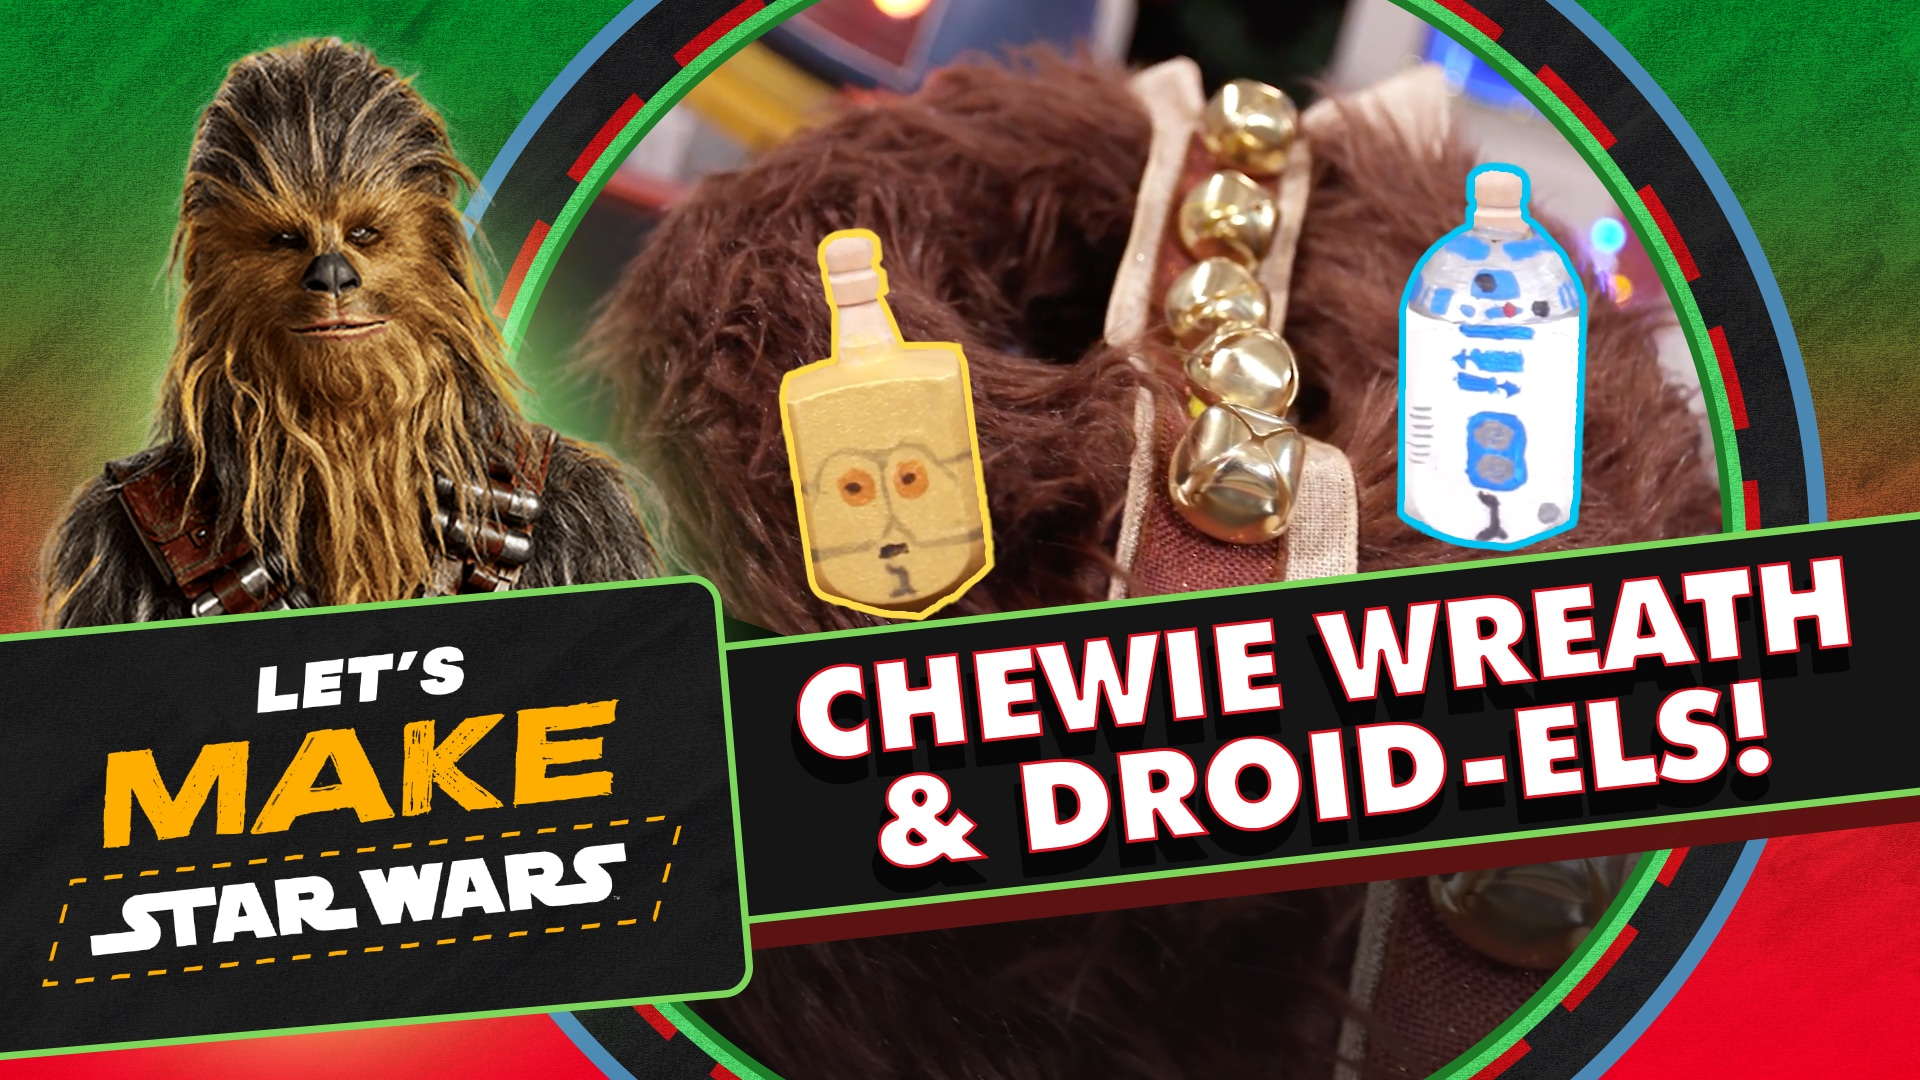 How to Make a Chewbacca Wreath and Droidels | Let's Make Star Wars